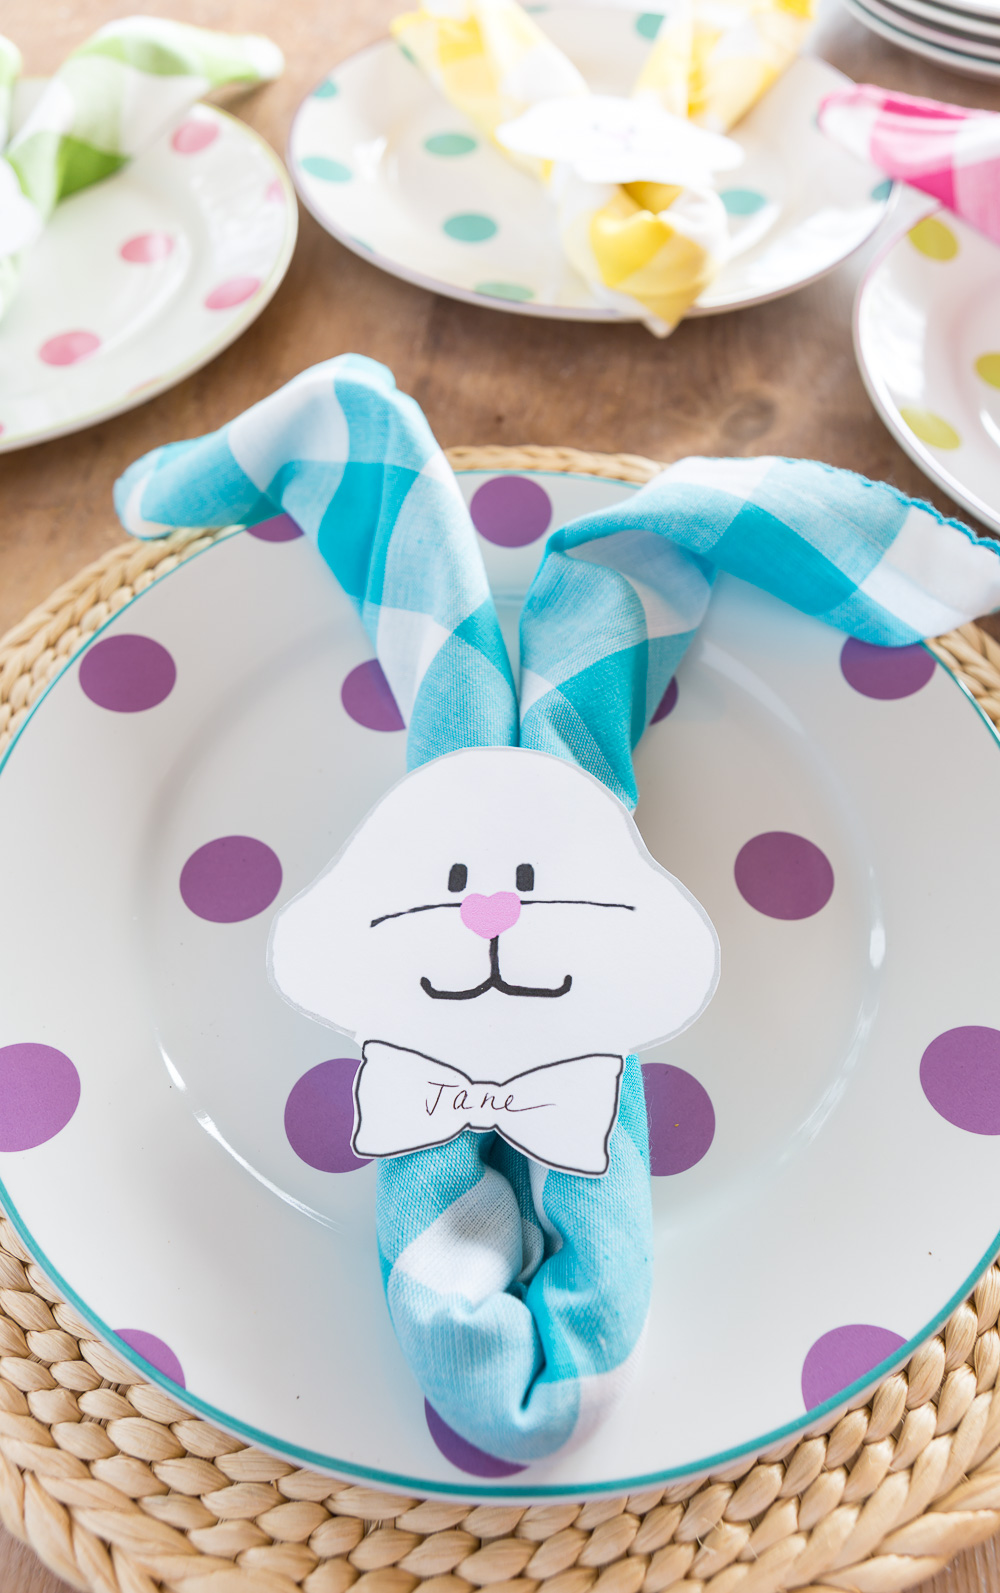 Pastel turquoise Buffalo Check Napkin made into an Easter dinner place card and napkin holder.